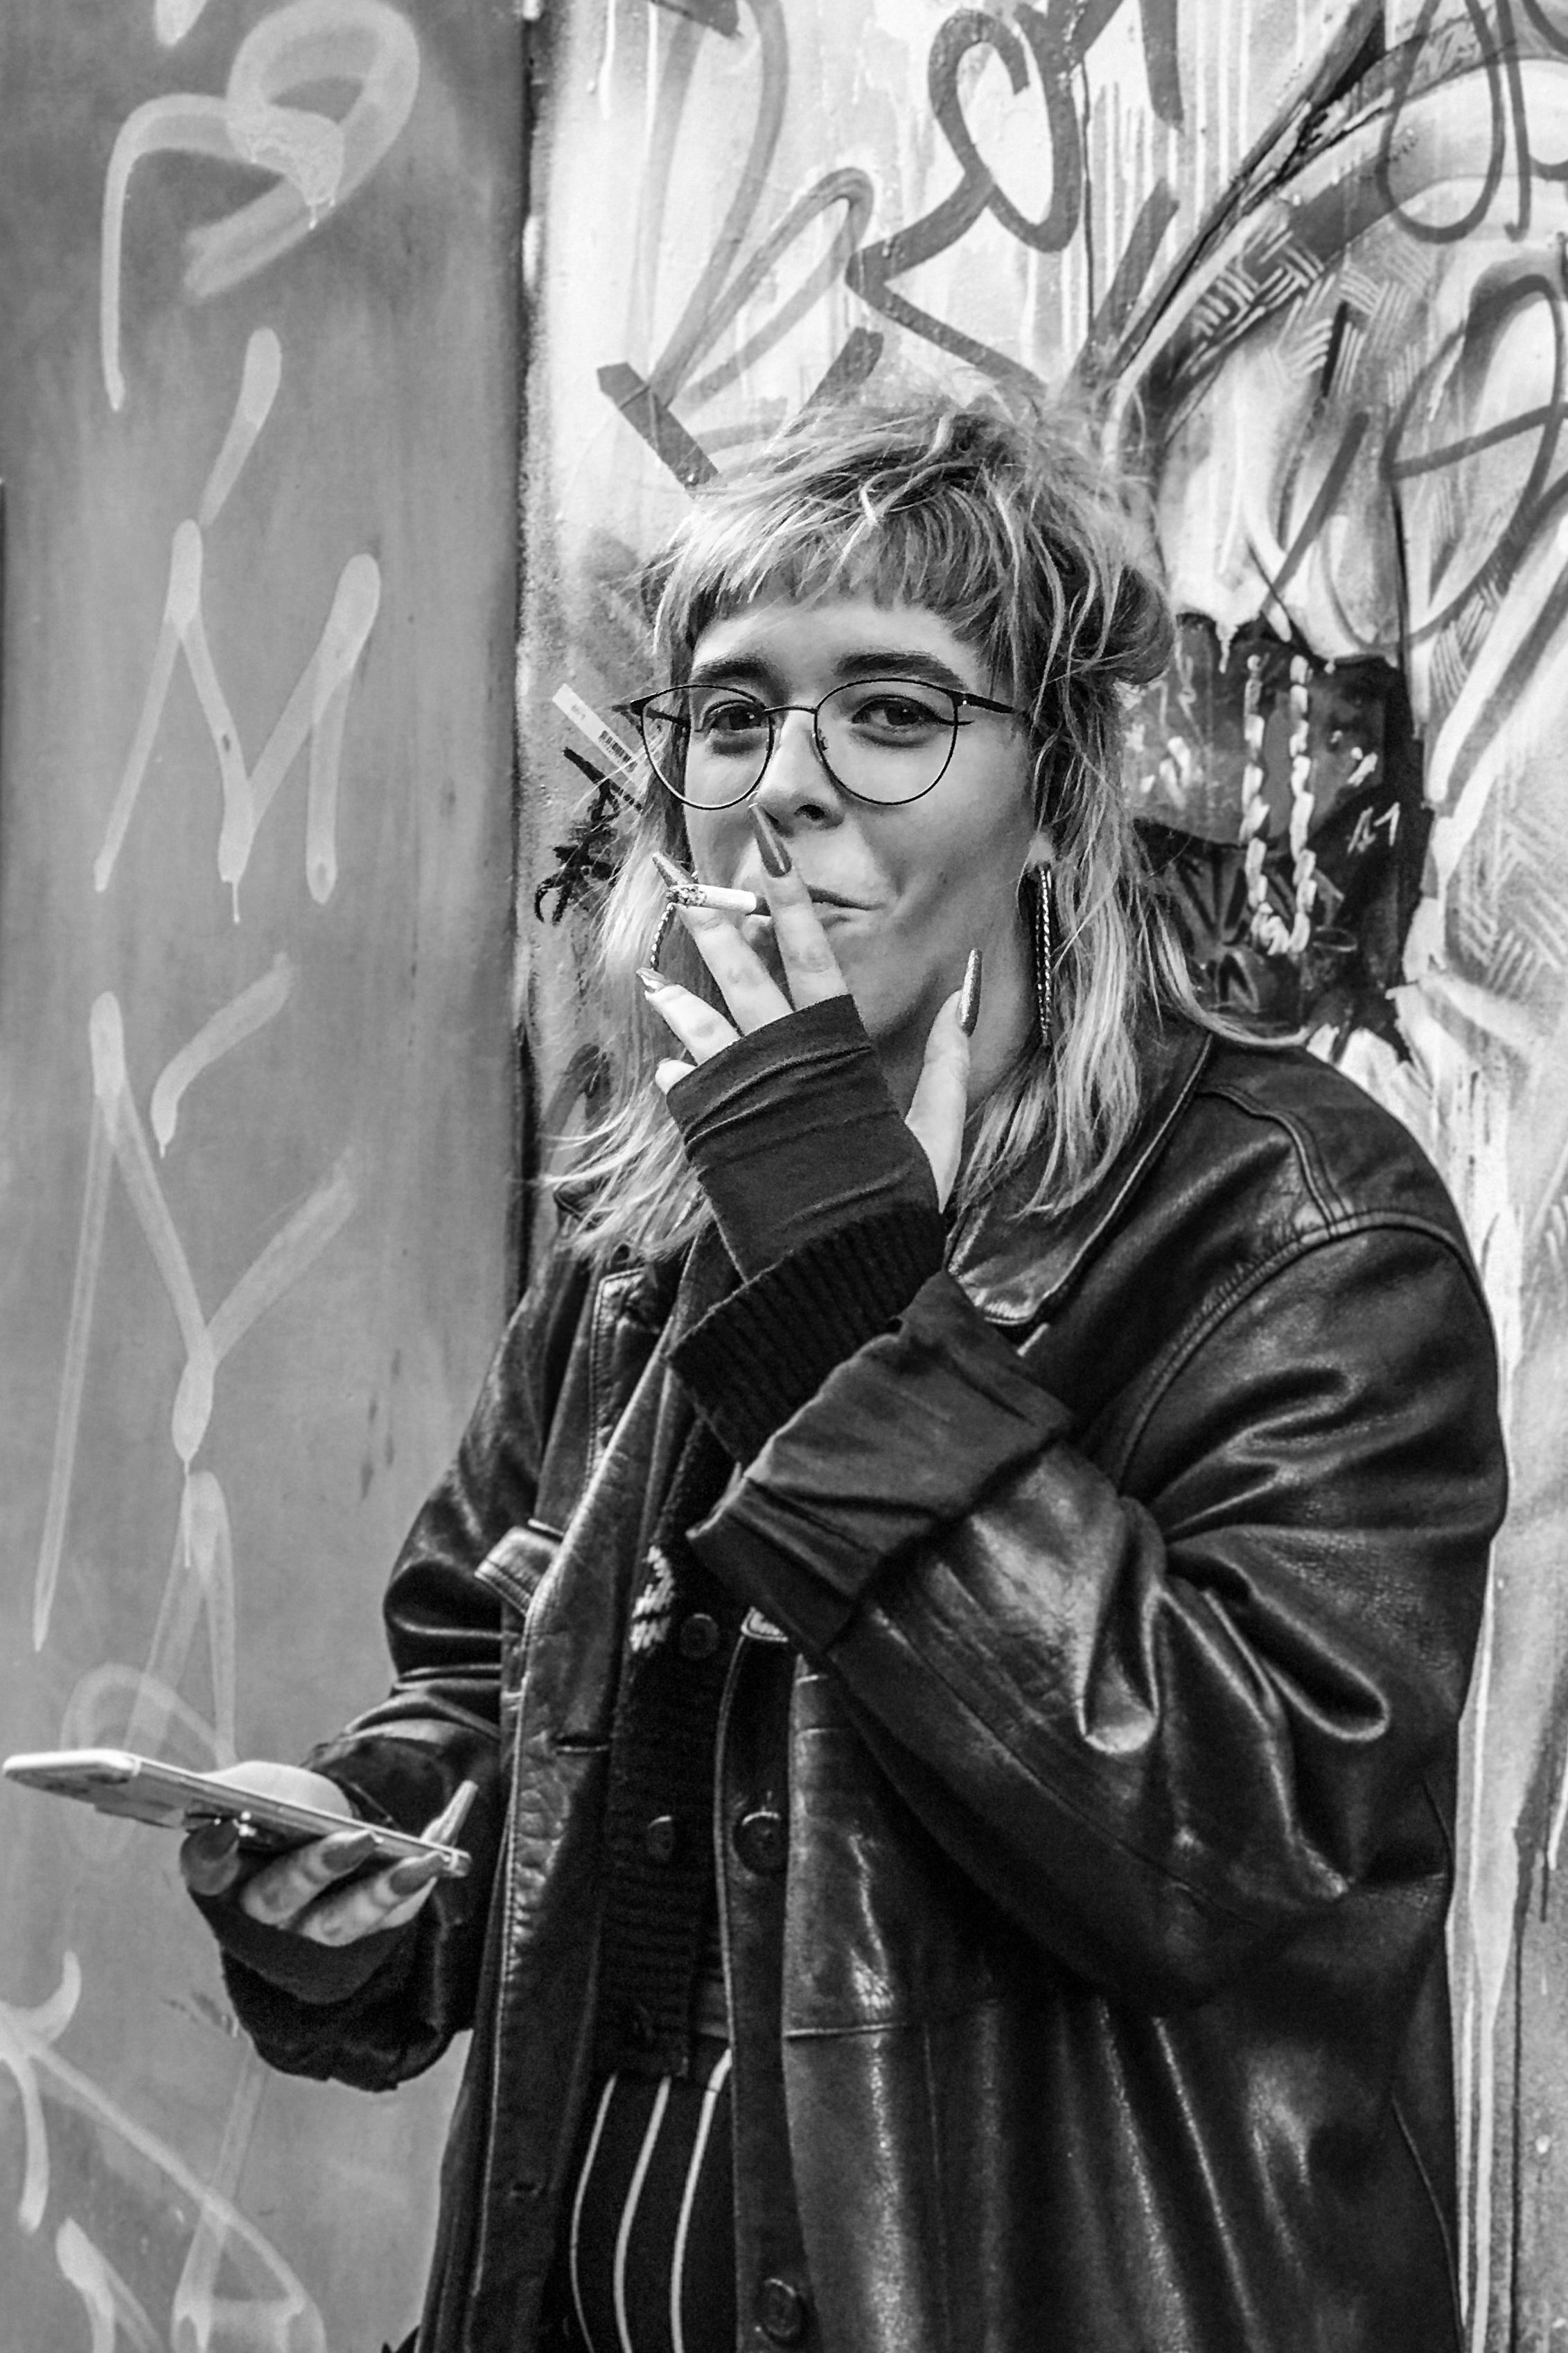 Black & White Portrait of a Stranger young woman with long nails smoking a cigarette looking directly at the camera